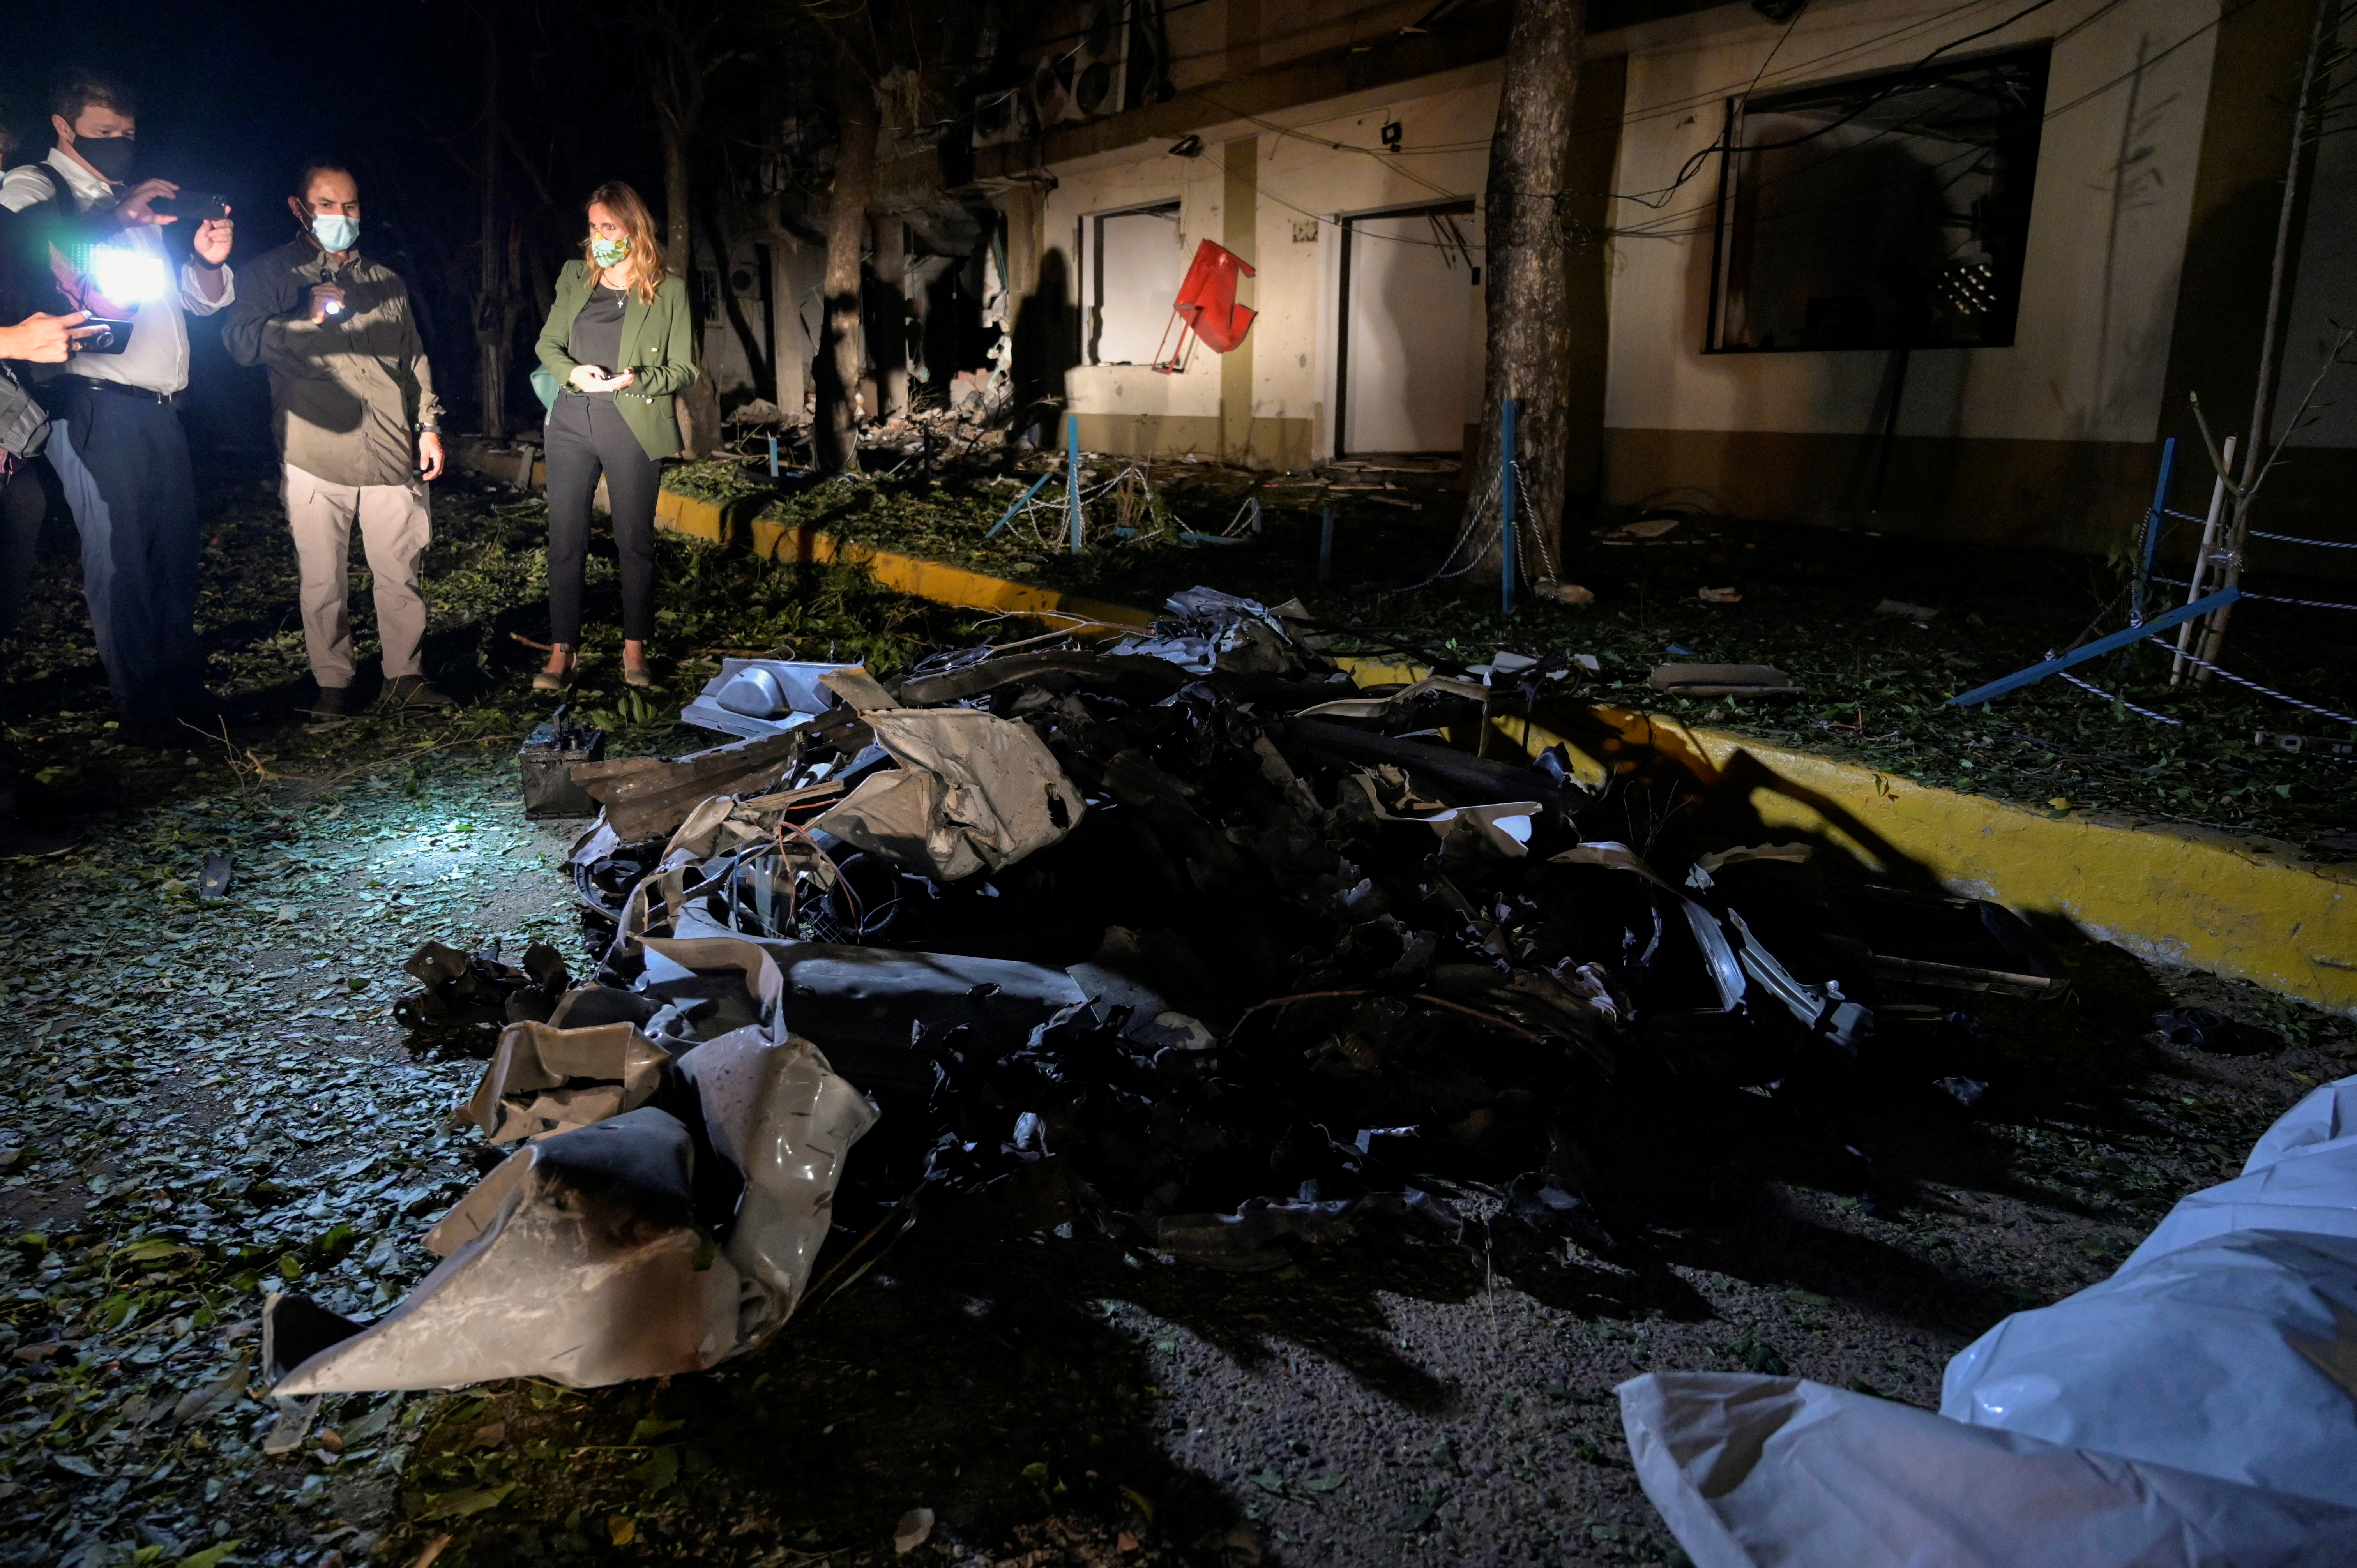 The remains of a car bomb that exploded inside a military base are seen in Cucuta, Colombia June 15, 2021. REUTERS/Stringer NO RESALES. NO ARCHIVES